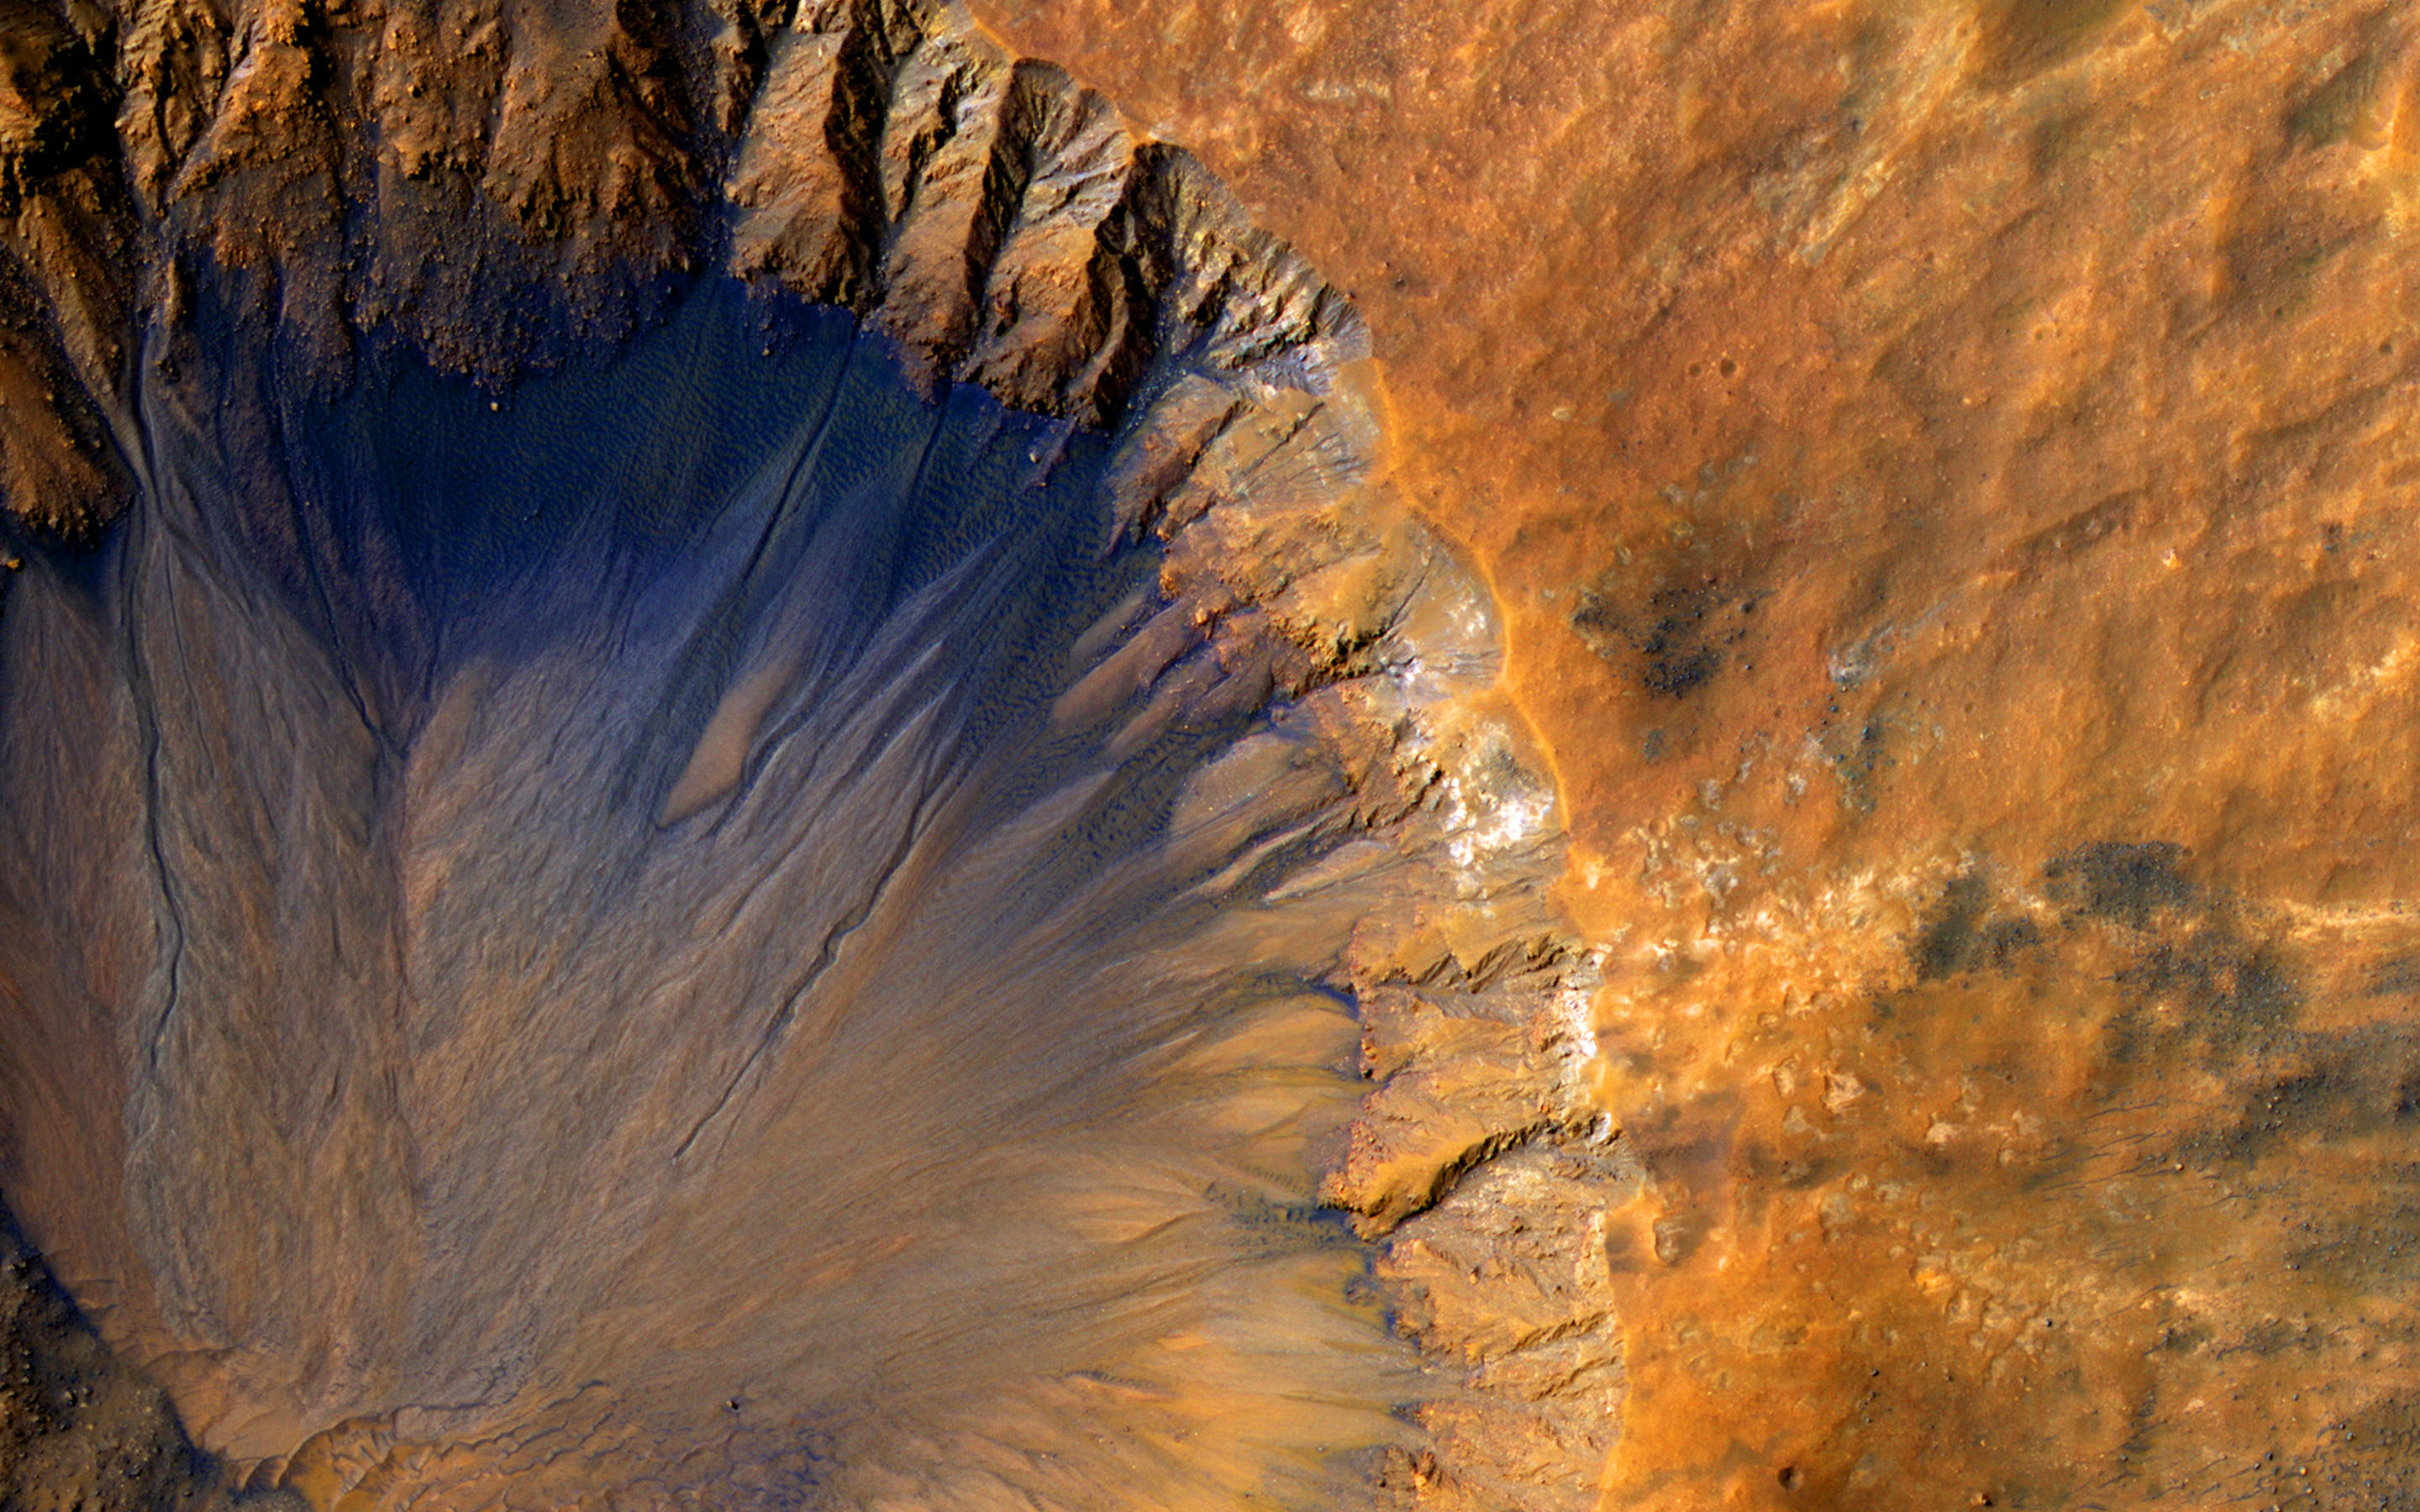 impact craters nasa - photo #30